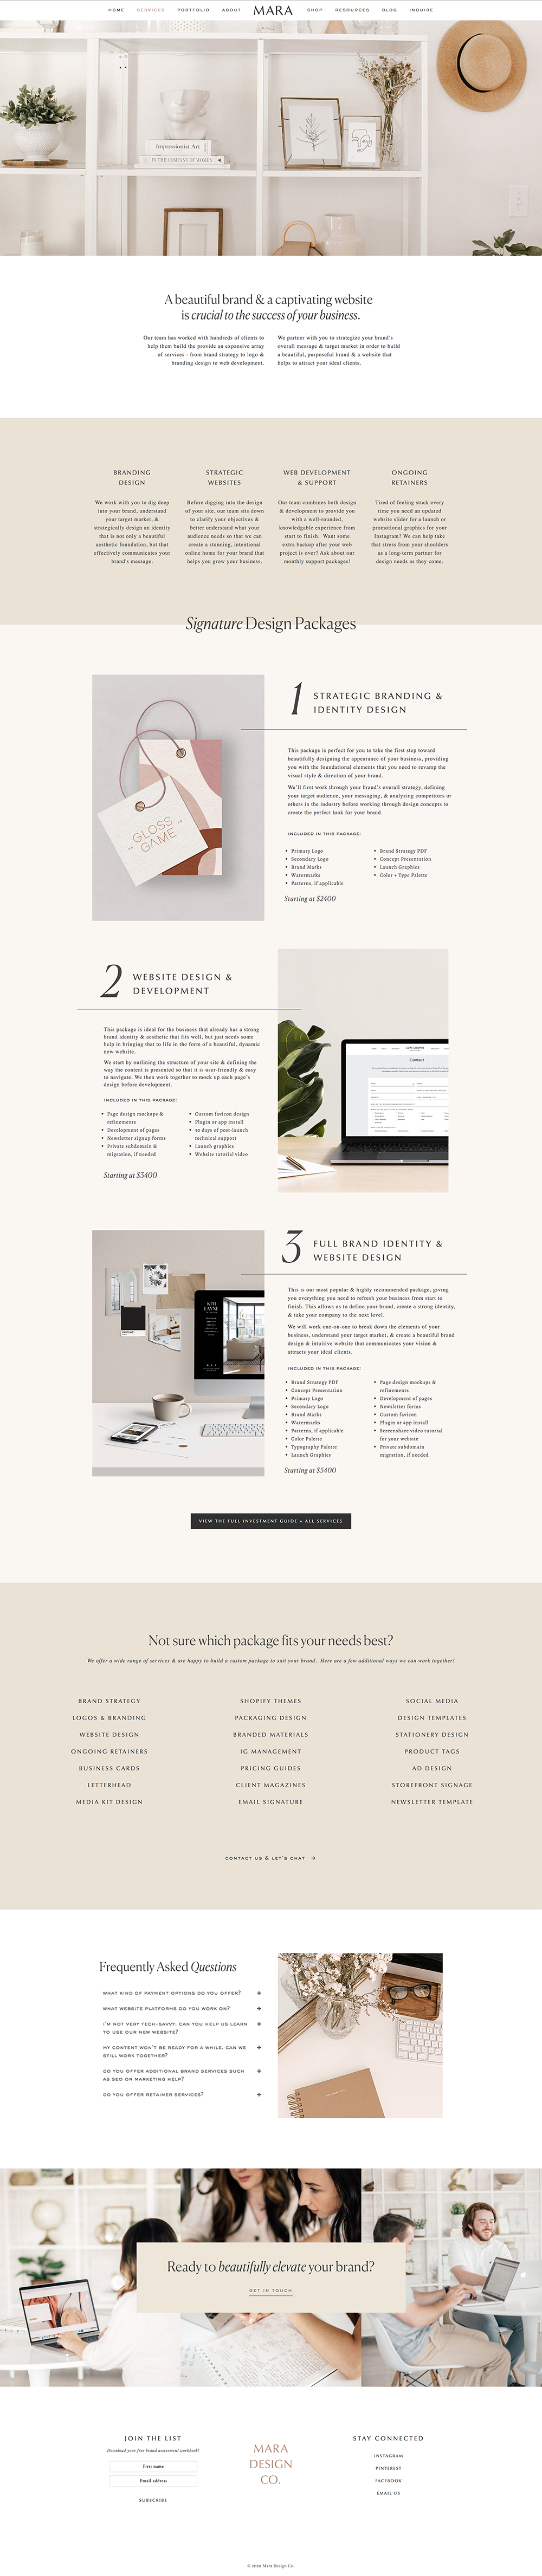 Chic Classic Information Page For Service Based Business Branding Website Design For In 2020 Branding Website Design Small Business Web Design Squarespace Design